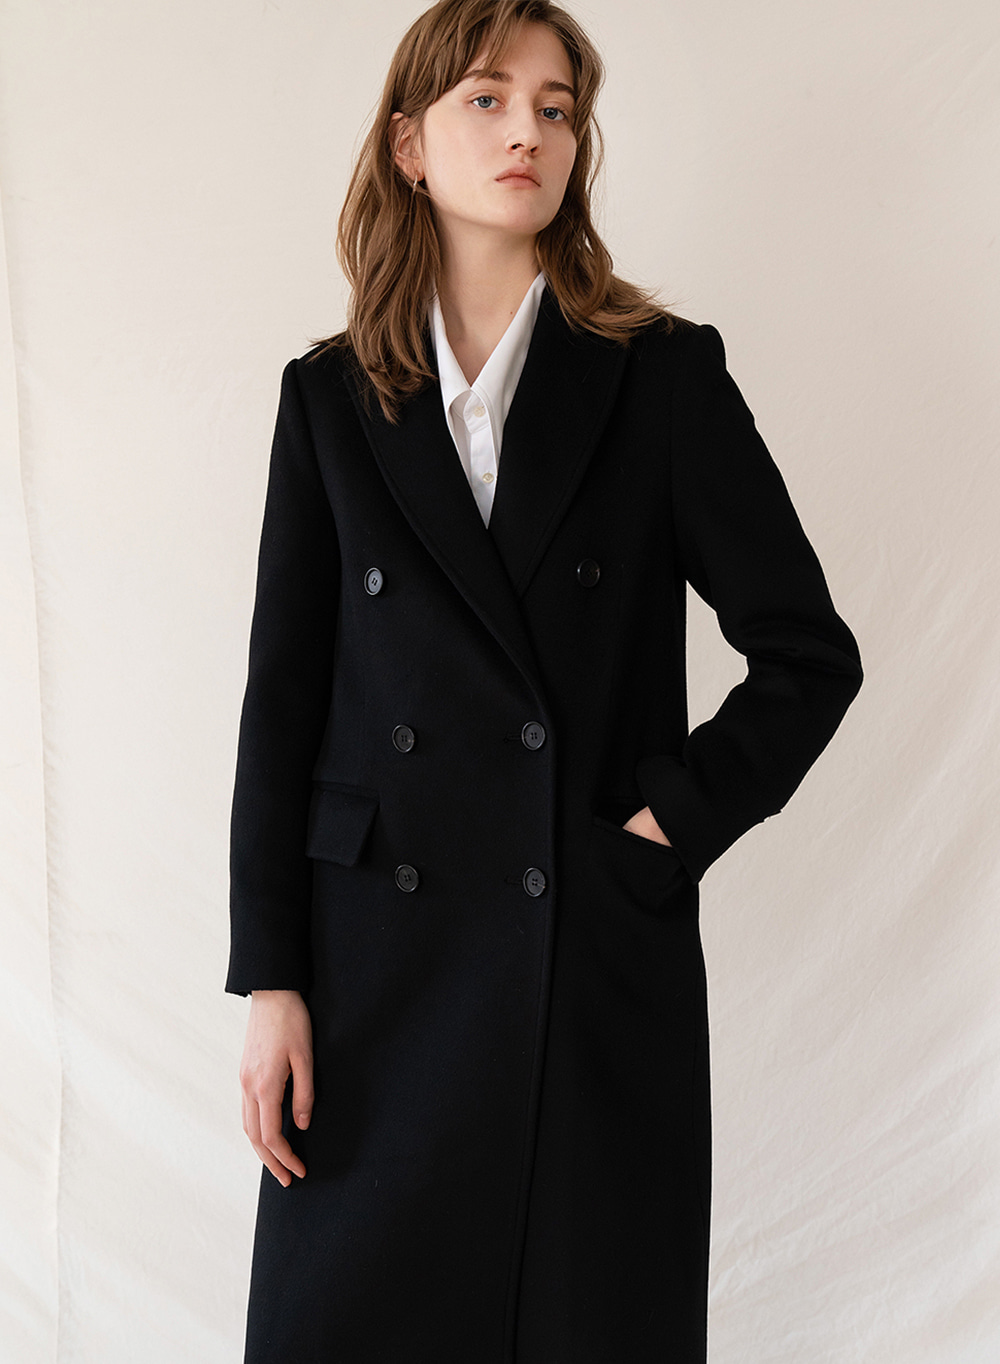 FW19 Cashemere double breasted coat black